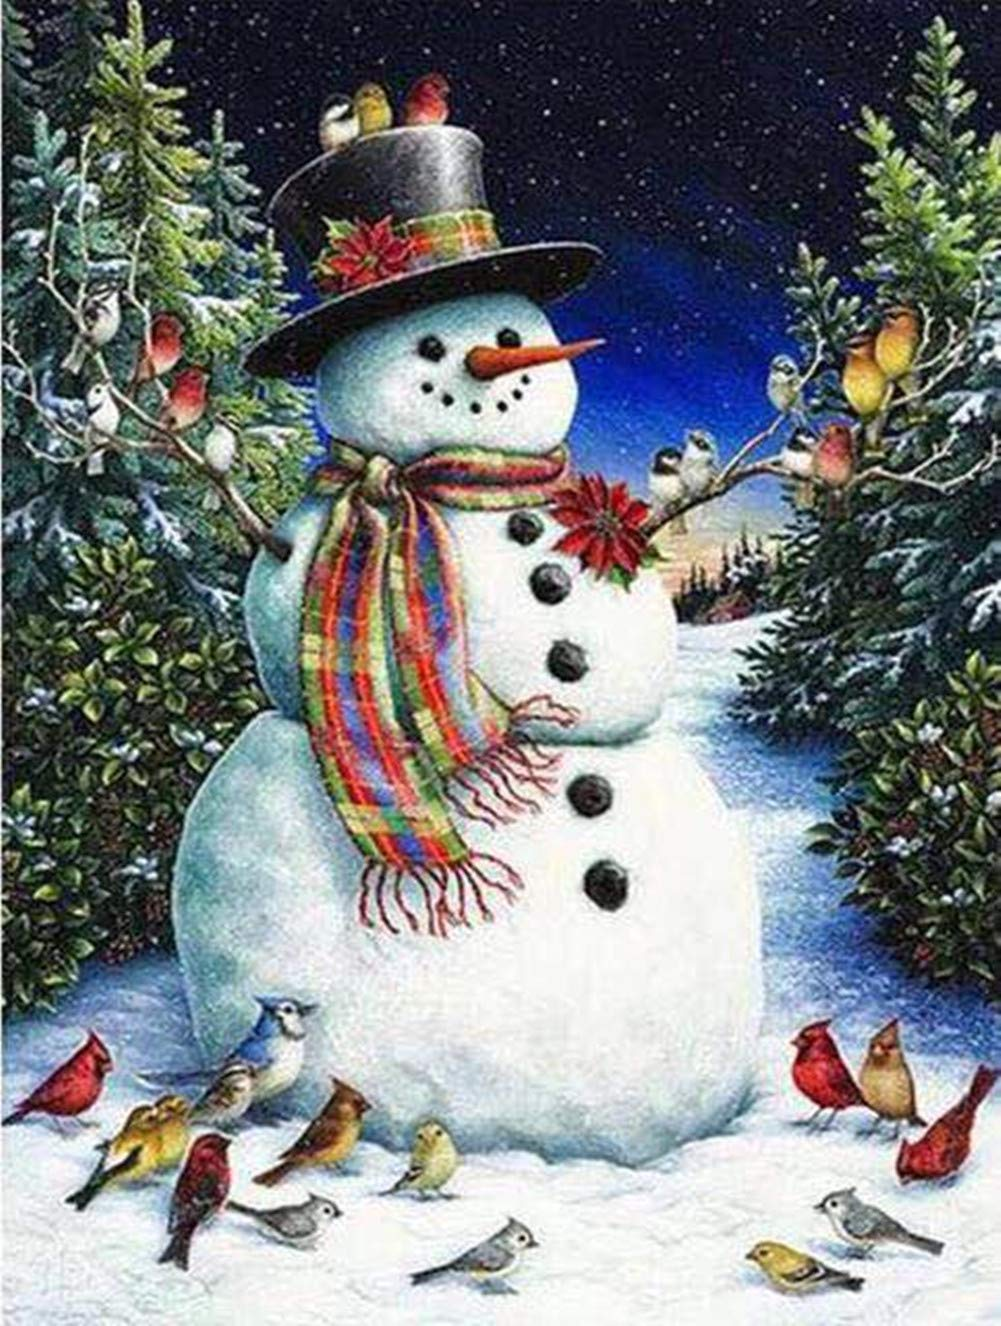 Aimilaly DIY 5D Diamond Painting by Number Kit Full Drill Christmas Snowman Rhinestone Embroidery Cross Stitch Supply Arts Craft Canvas Wall Decor